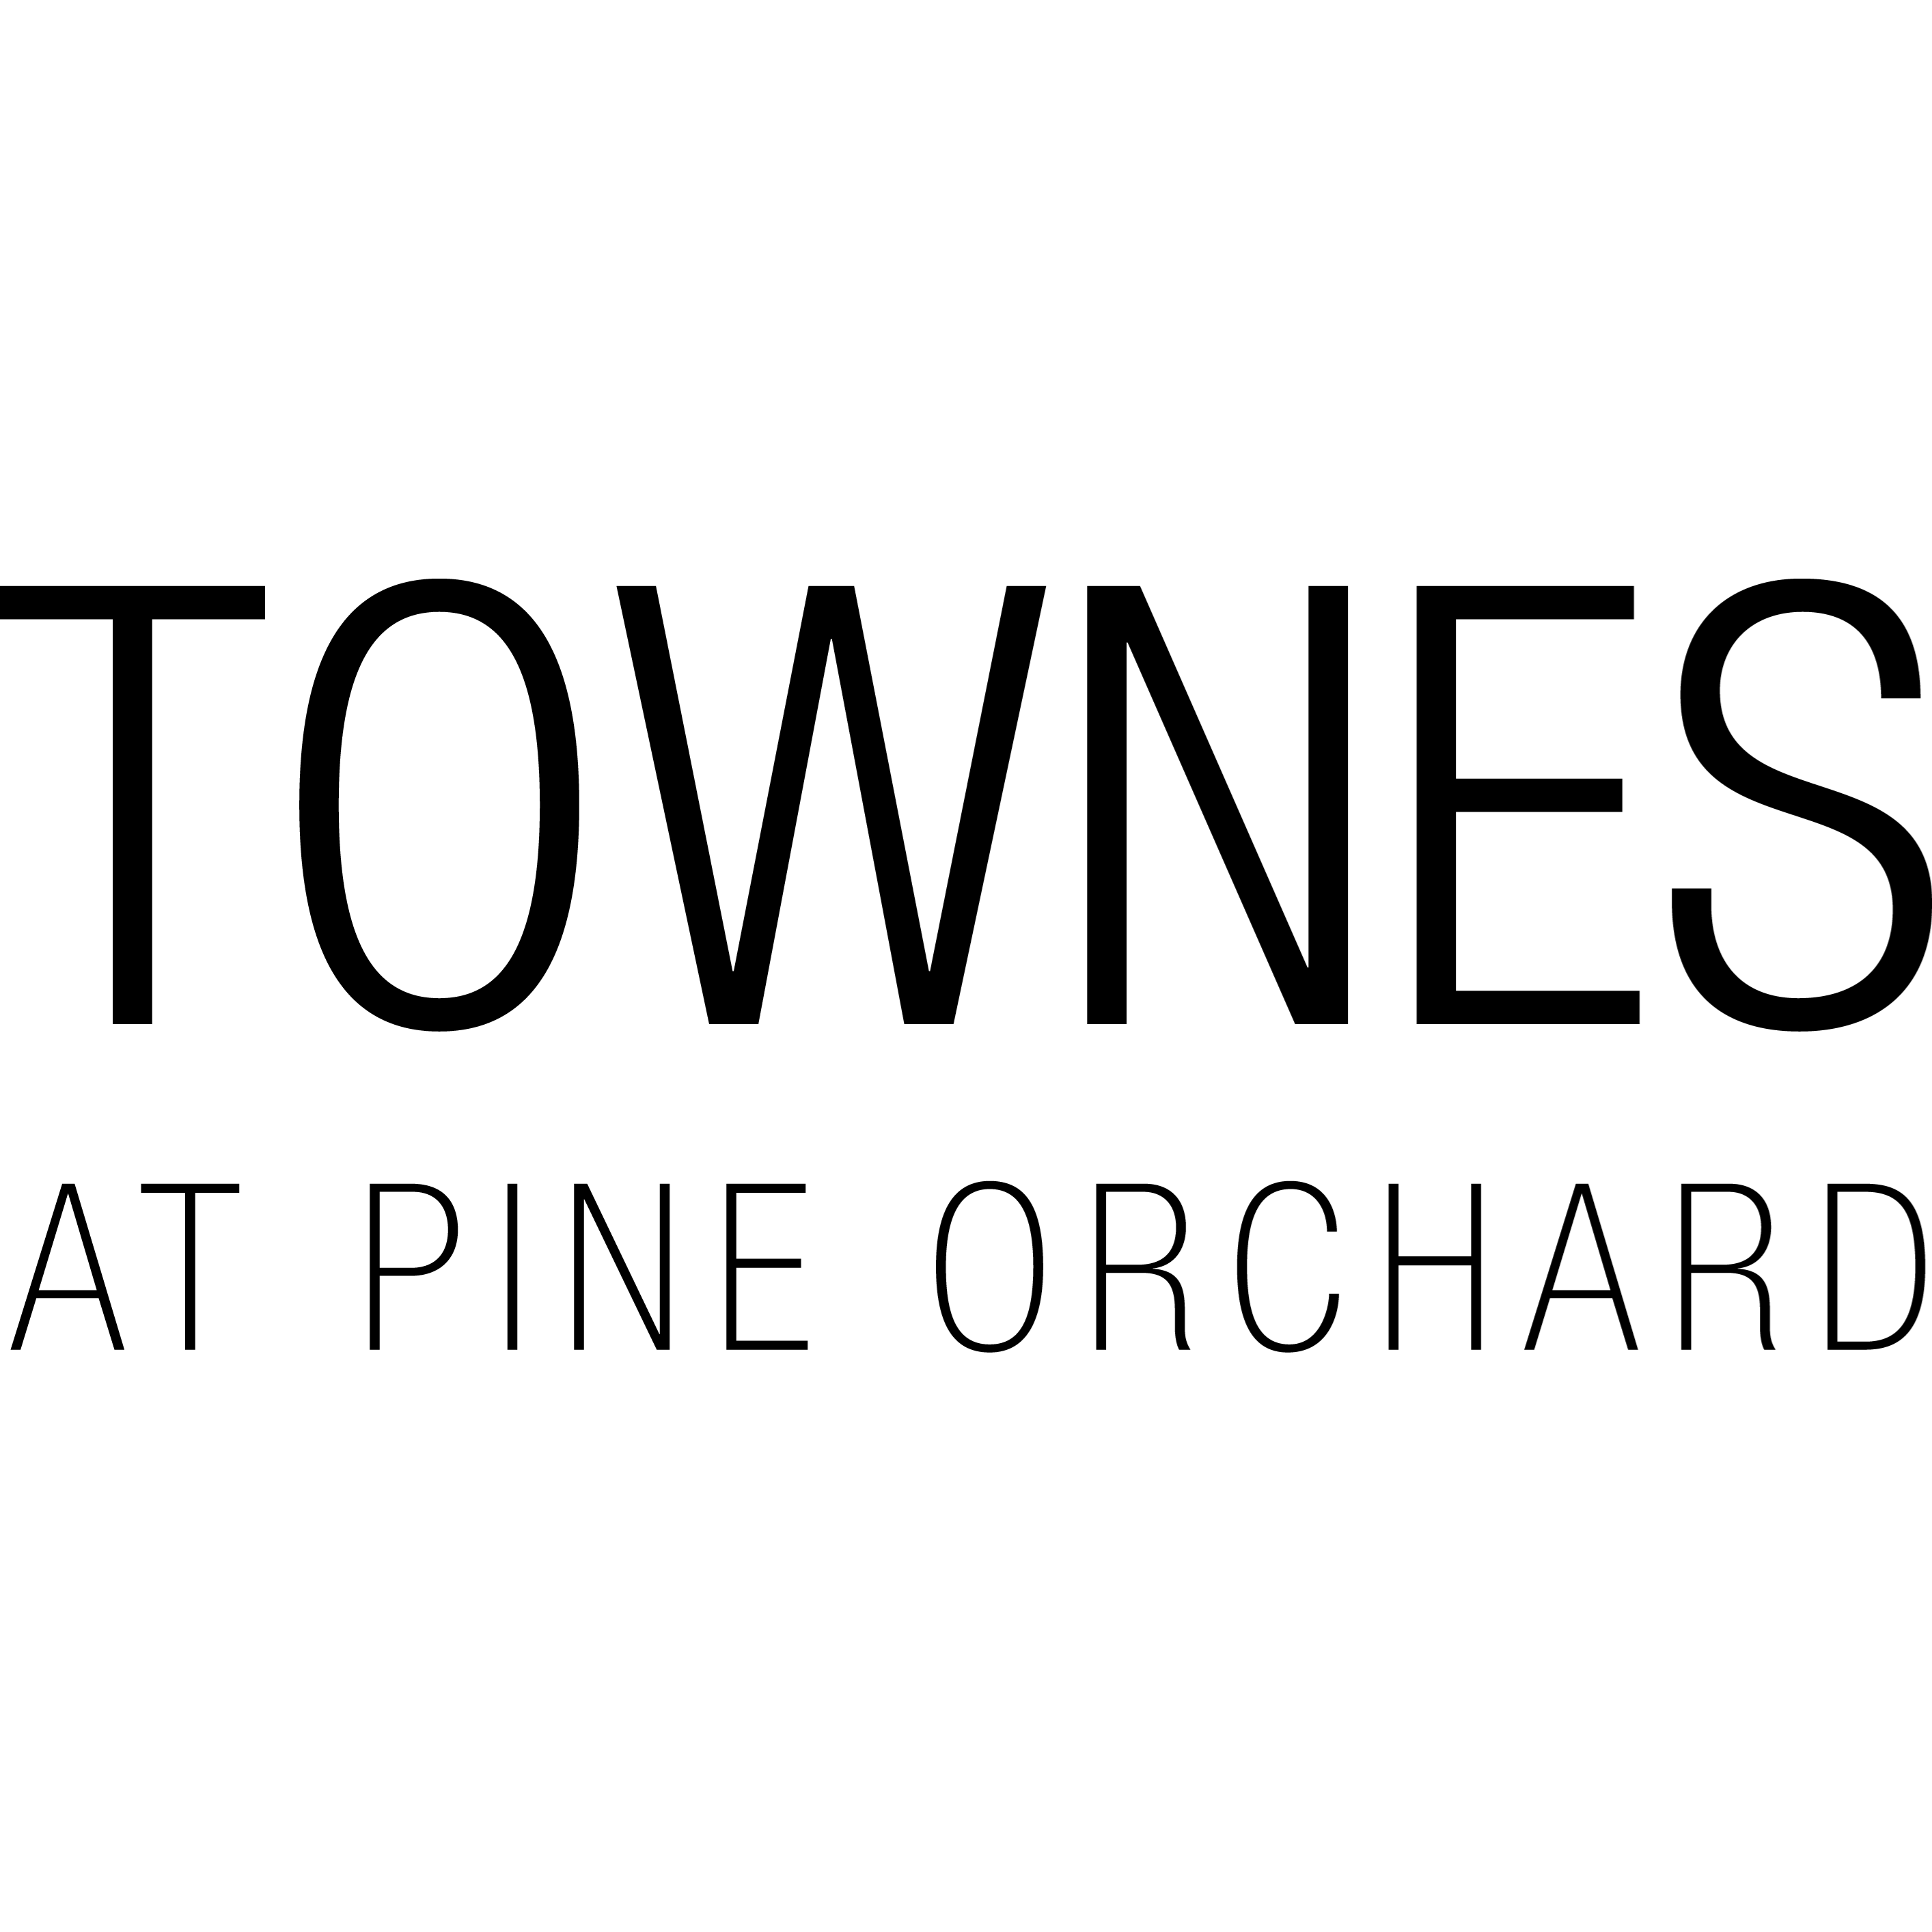 Townes at Pine Orchard image 8